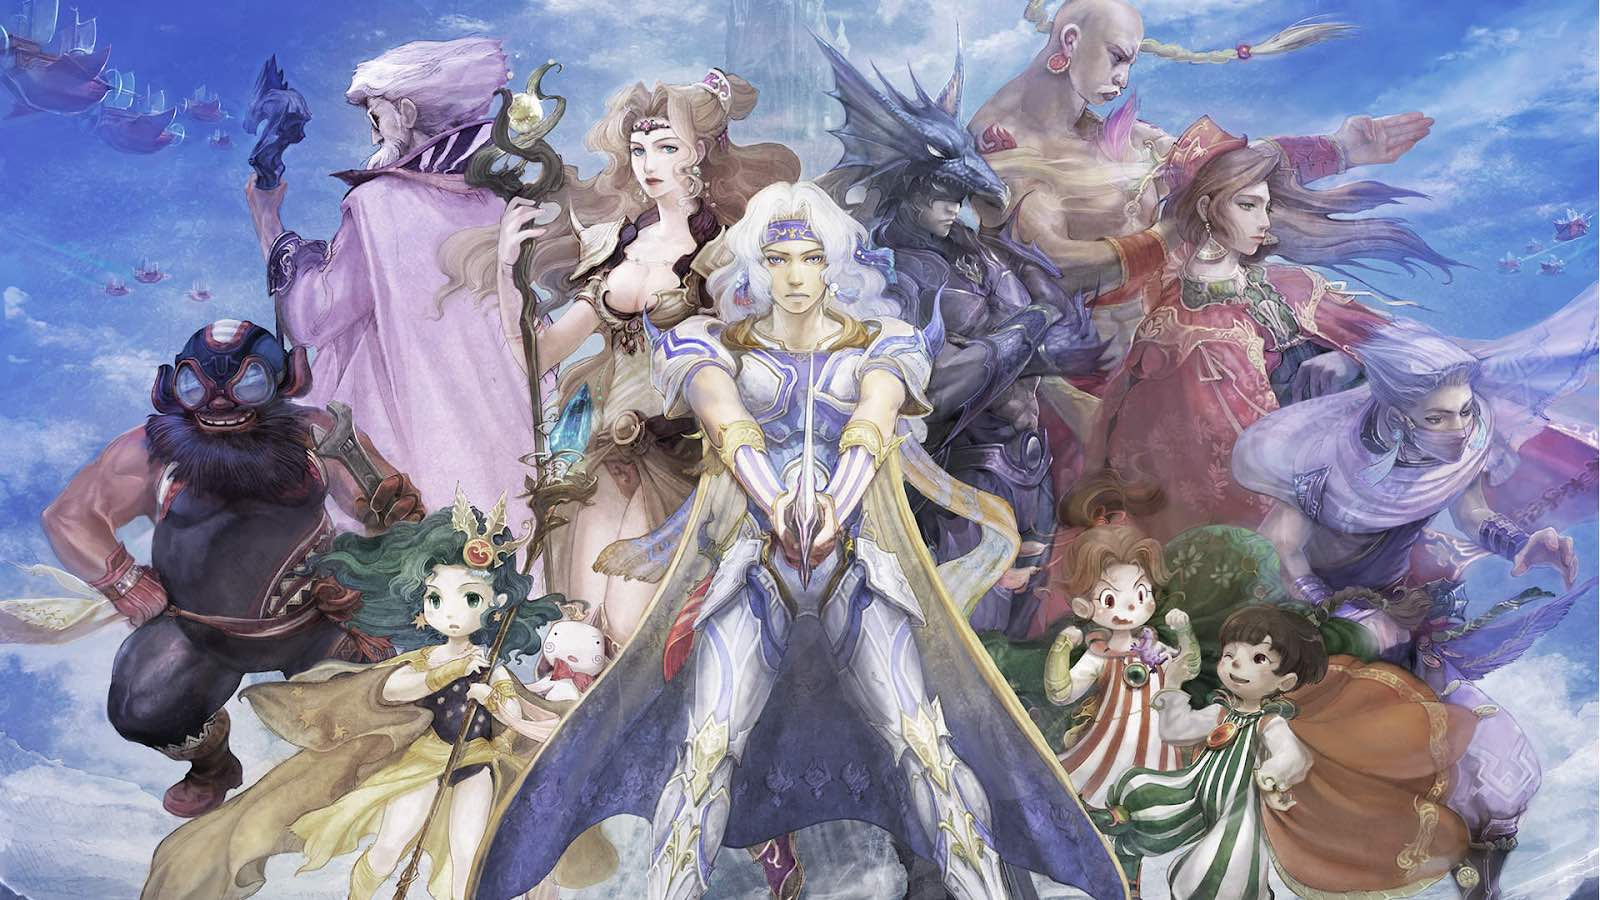 Where To Start With The Final Fantasy Series